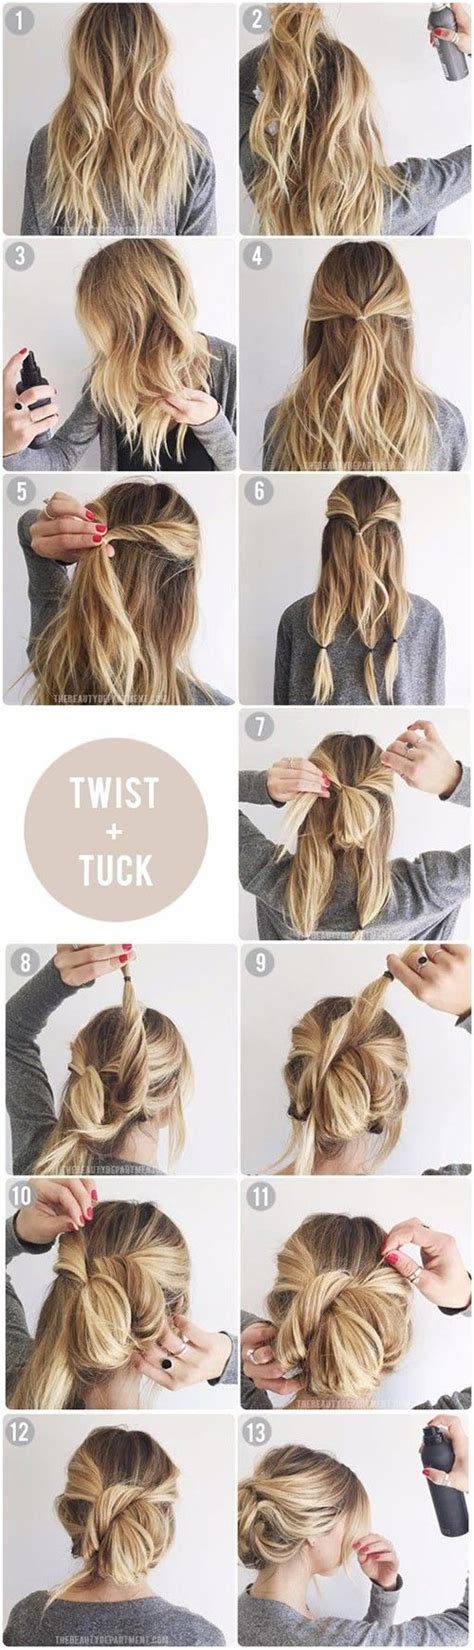 Easy Updo Hairstyle Tutorials by Top 10 Updo Tutorials For Different Hair Lengths